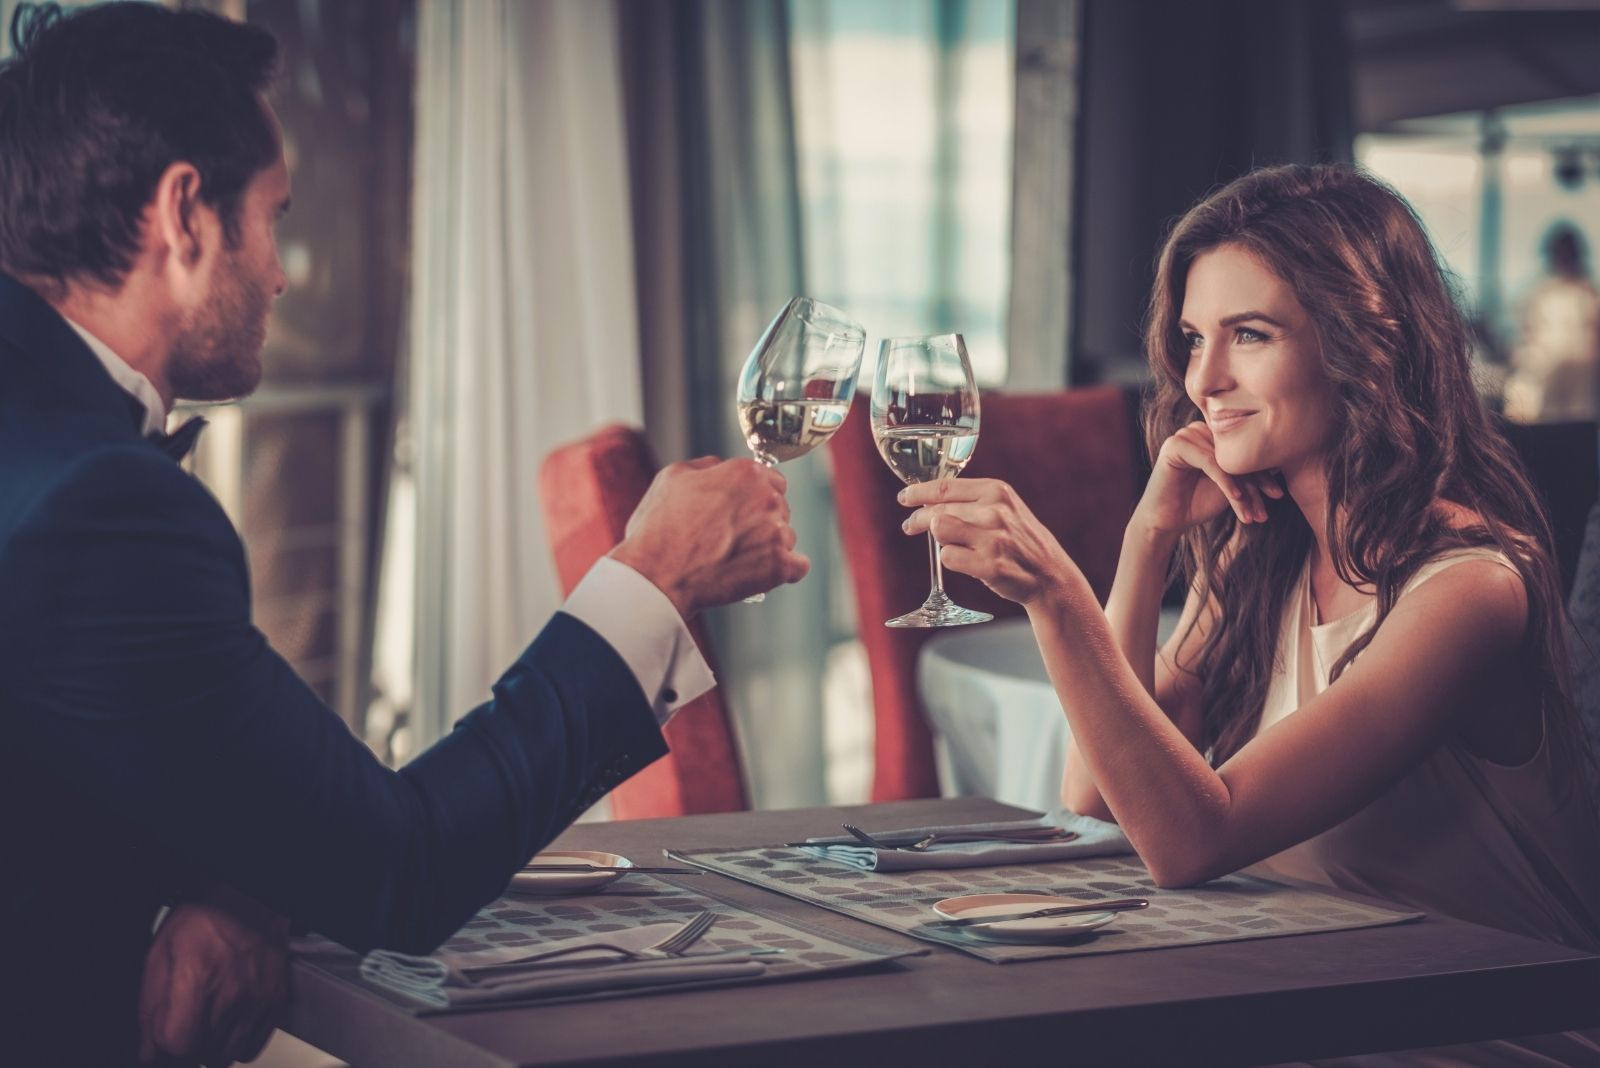 couple clinking glasses during a date night in a fancy restaurant